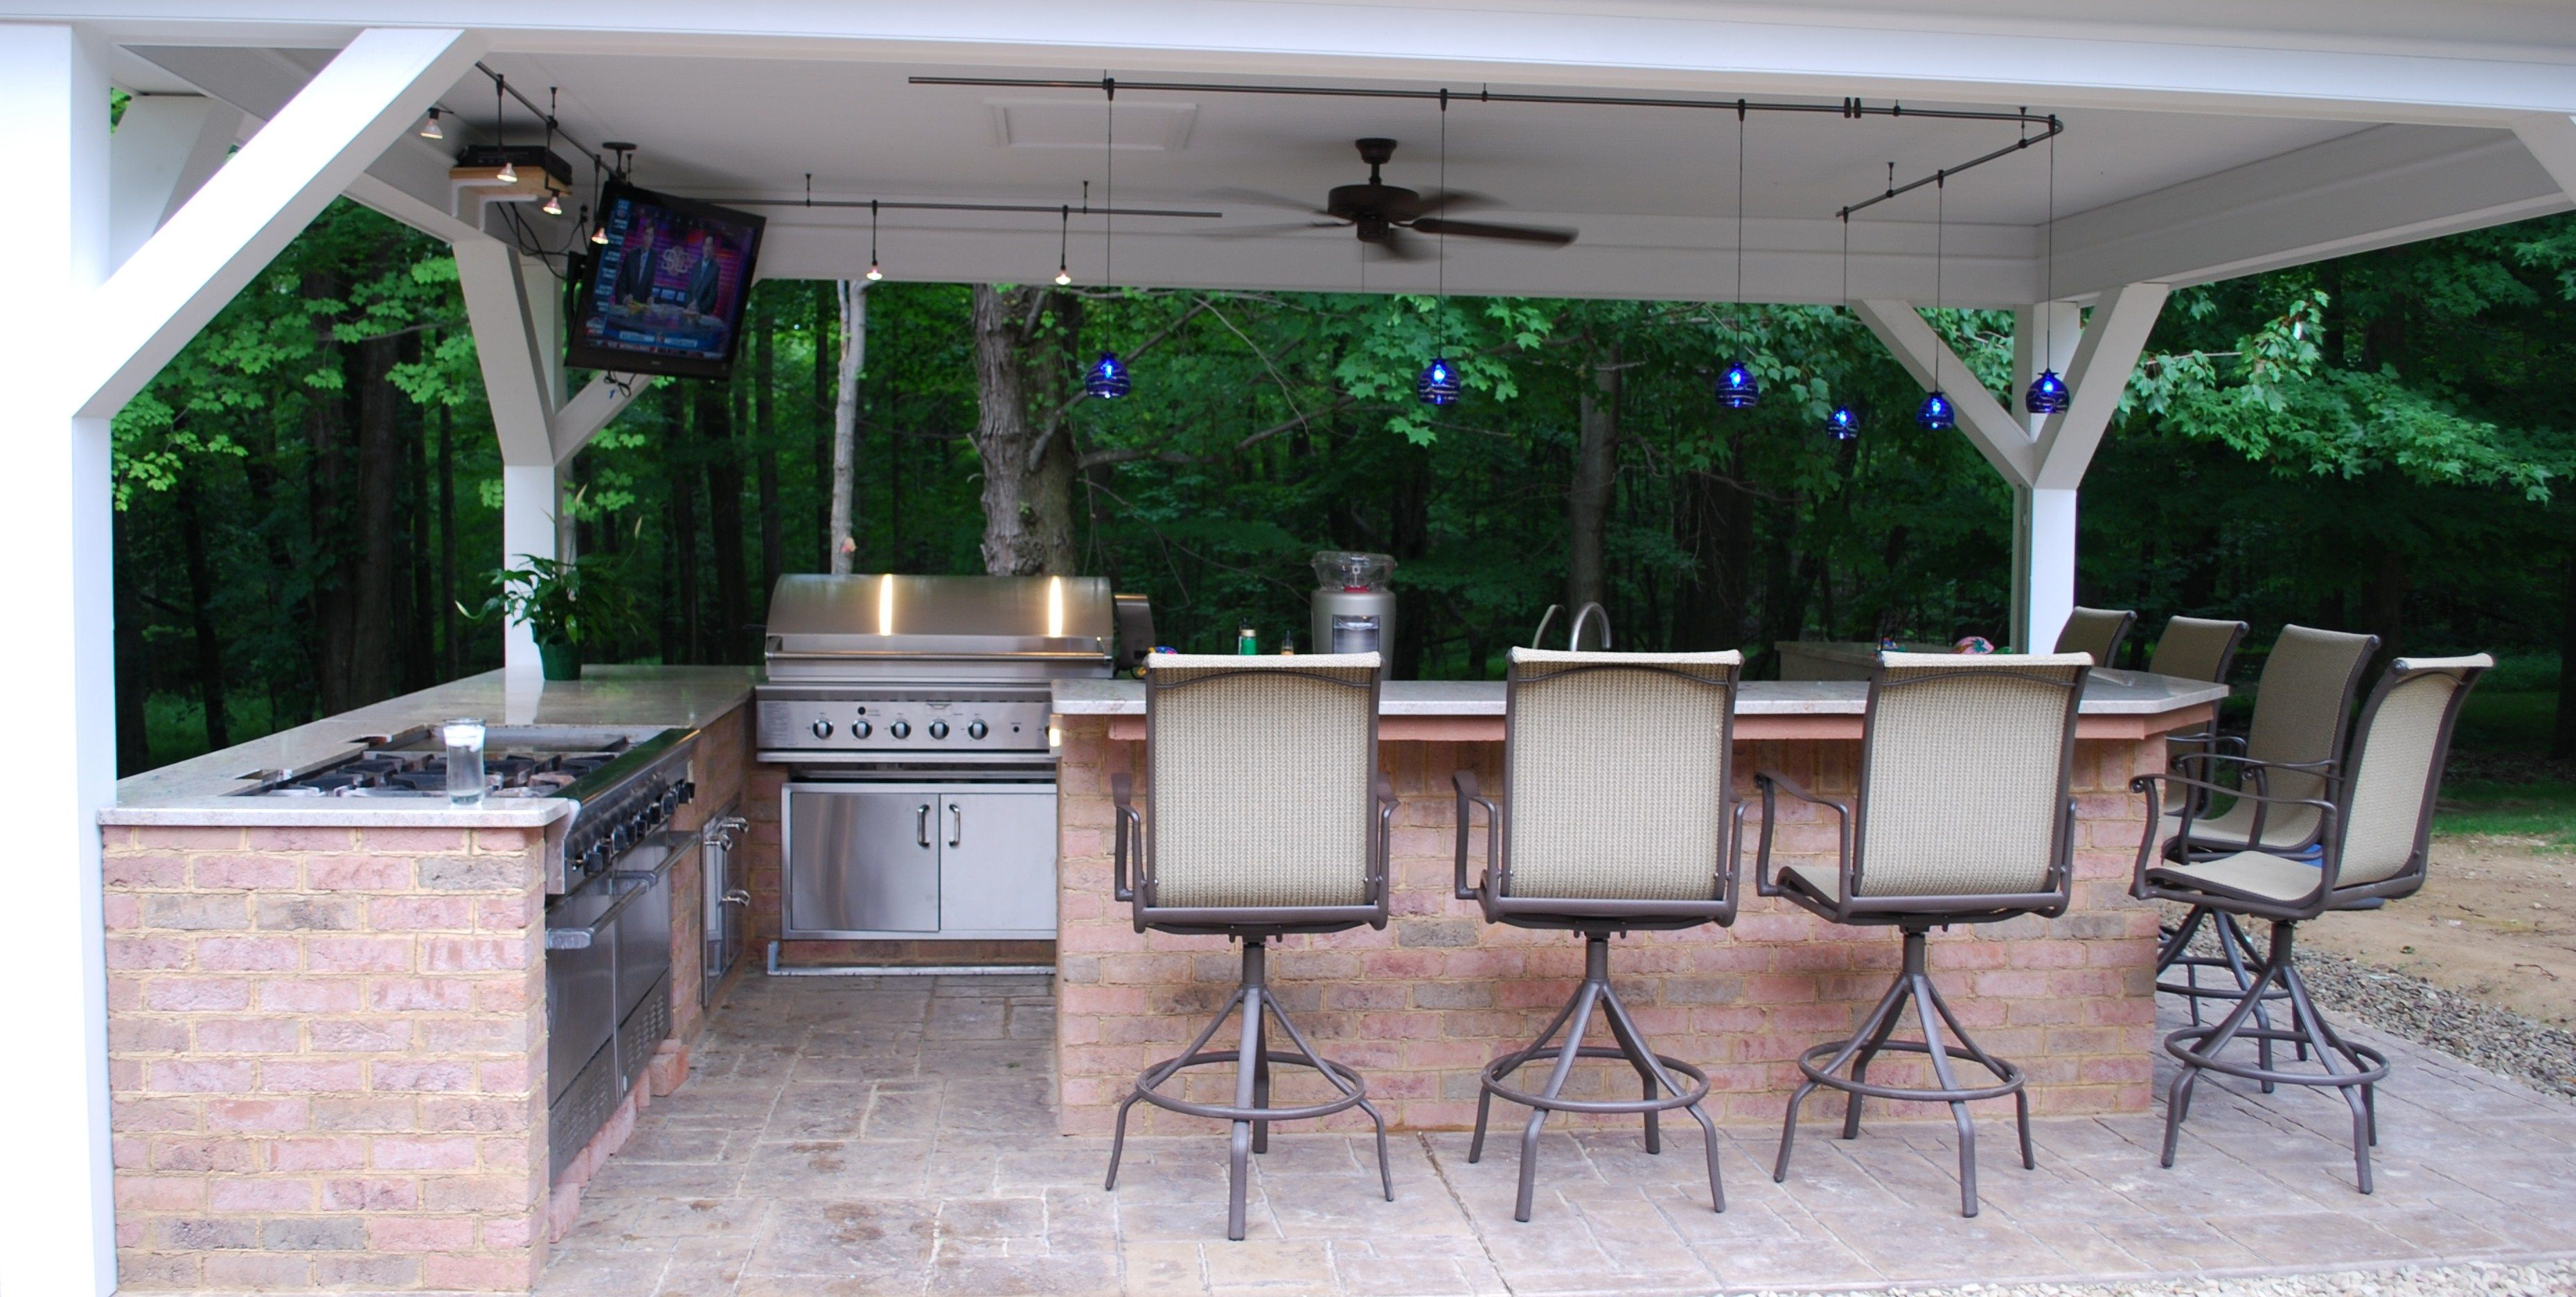 Outdoor Kitchens Cleveland Outdoor Grills Columbus Outdoor Stainless Steel Cabinets Akron Medina Lorain Outdoo Outdoor Furniture Sets Outdoor Outdoor Bar